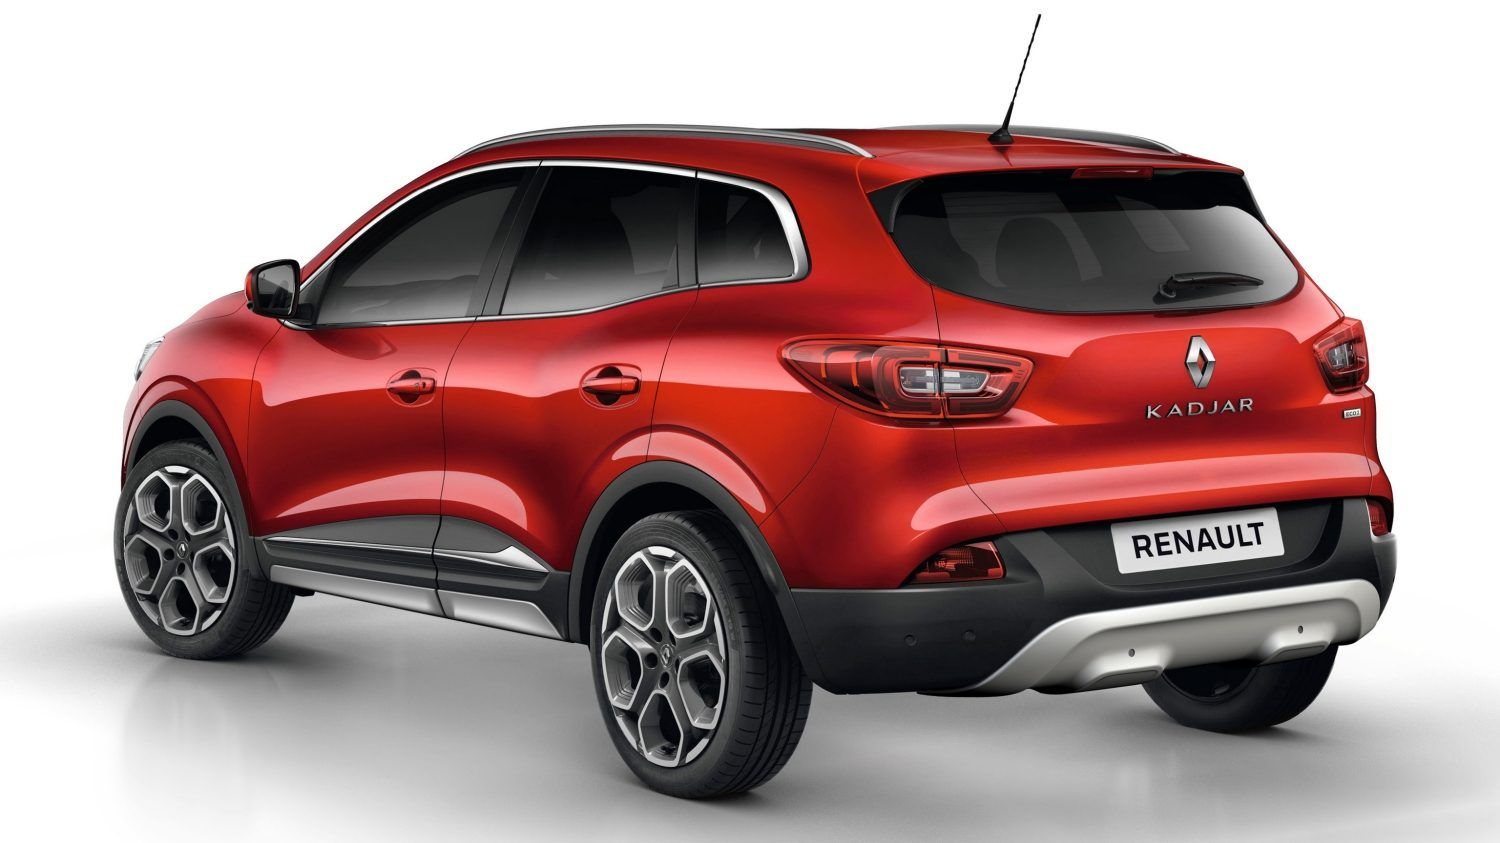 M in addition Nissan Pulsar Alloy Wheel With Tyre P moreover Renault Clio Sport Rs Air Box Cleaner P moreover Renault Kadjar Rear Bumper Parking Sensor Trim Spoiler Holes Park Assist B D P furthermore Nissan Qashqai Used Heater Blower Fan Motor Climate Control P. on saab timing chain replacement